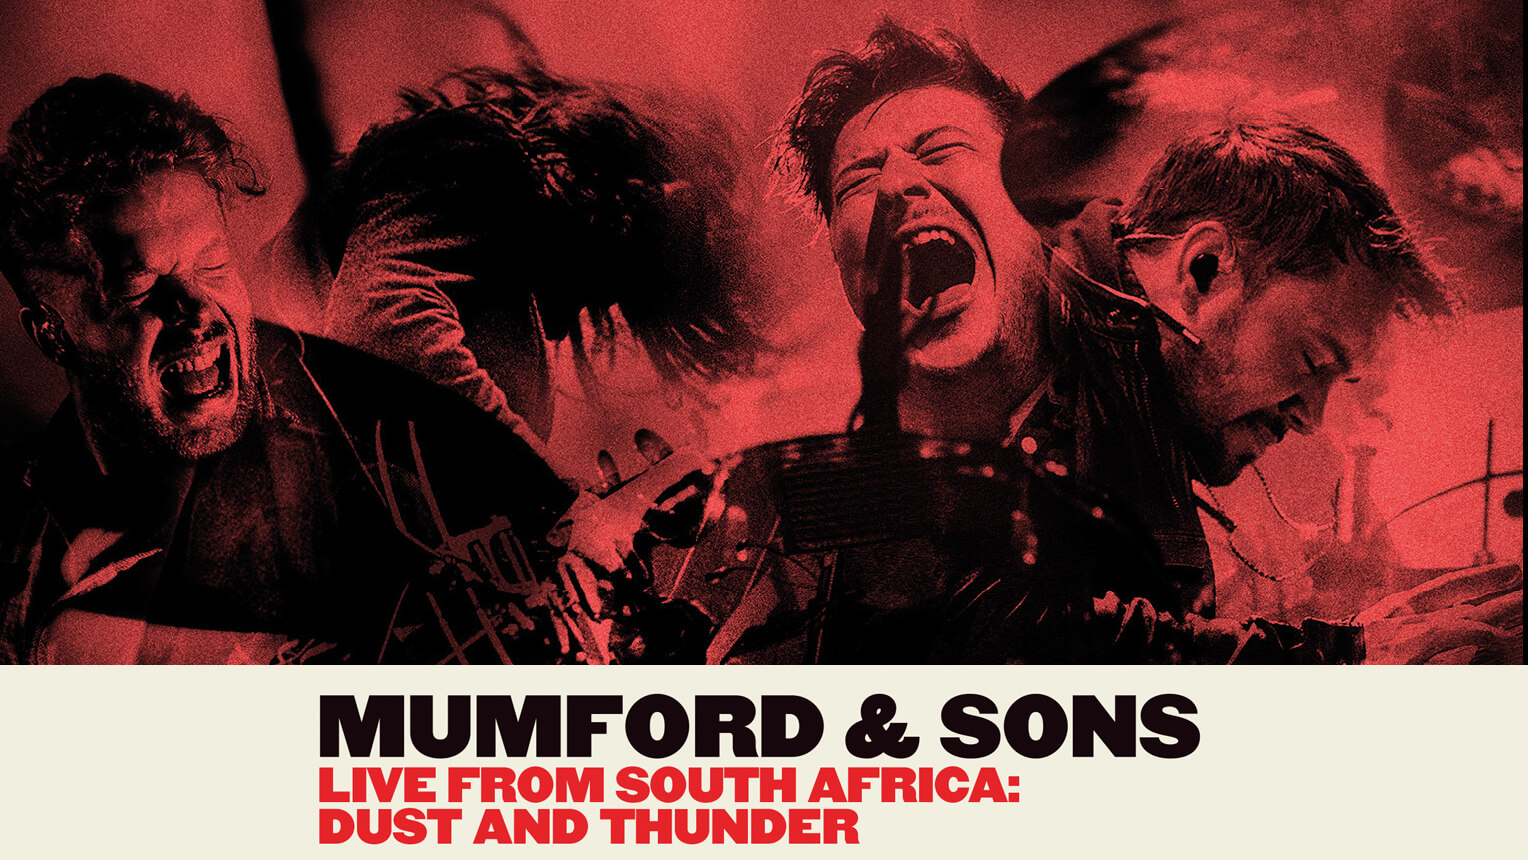 mumford & sons live from south africa poster